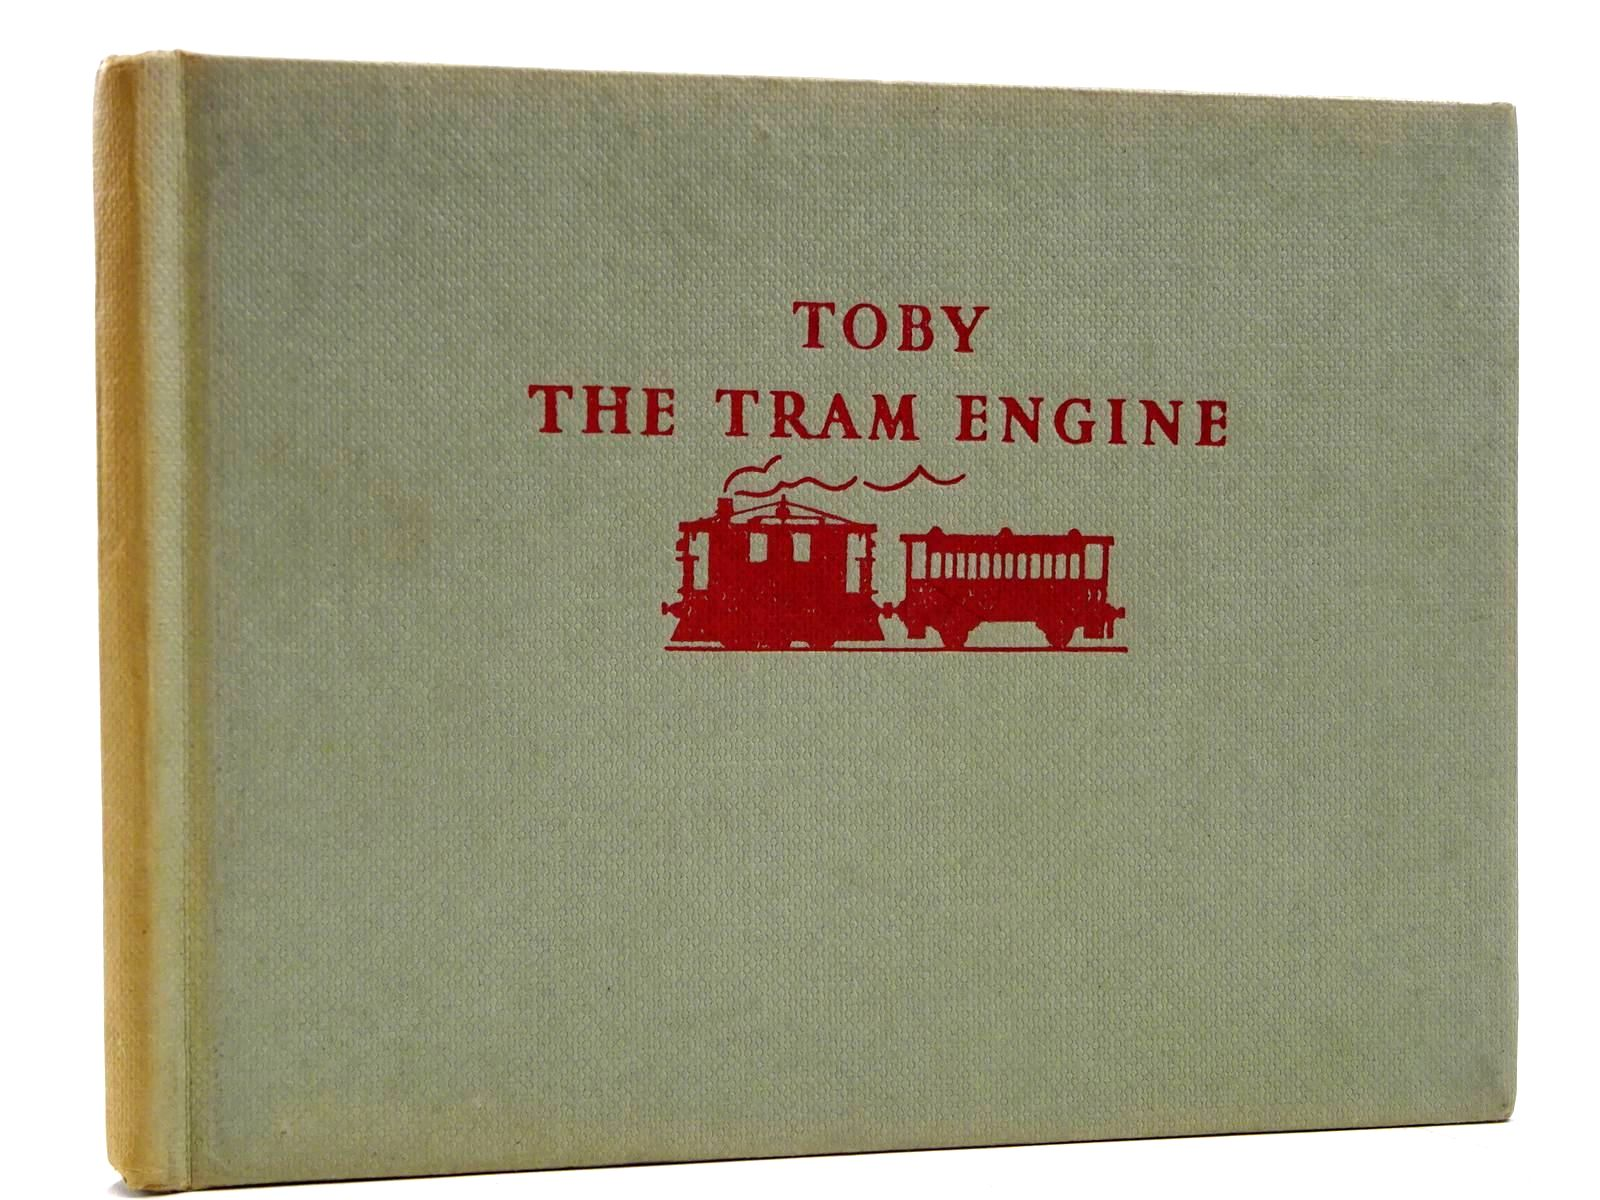 Photo of TOBY THE TRAM ENGINE written by Awdry, Rev. W. illustrated by Dalby, C. Reginald published by Edmund Ward (STOCK CODE: 2131107)  for sale by Stella & Rose's Books